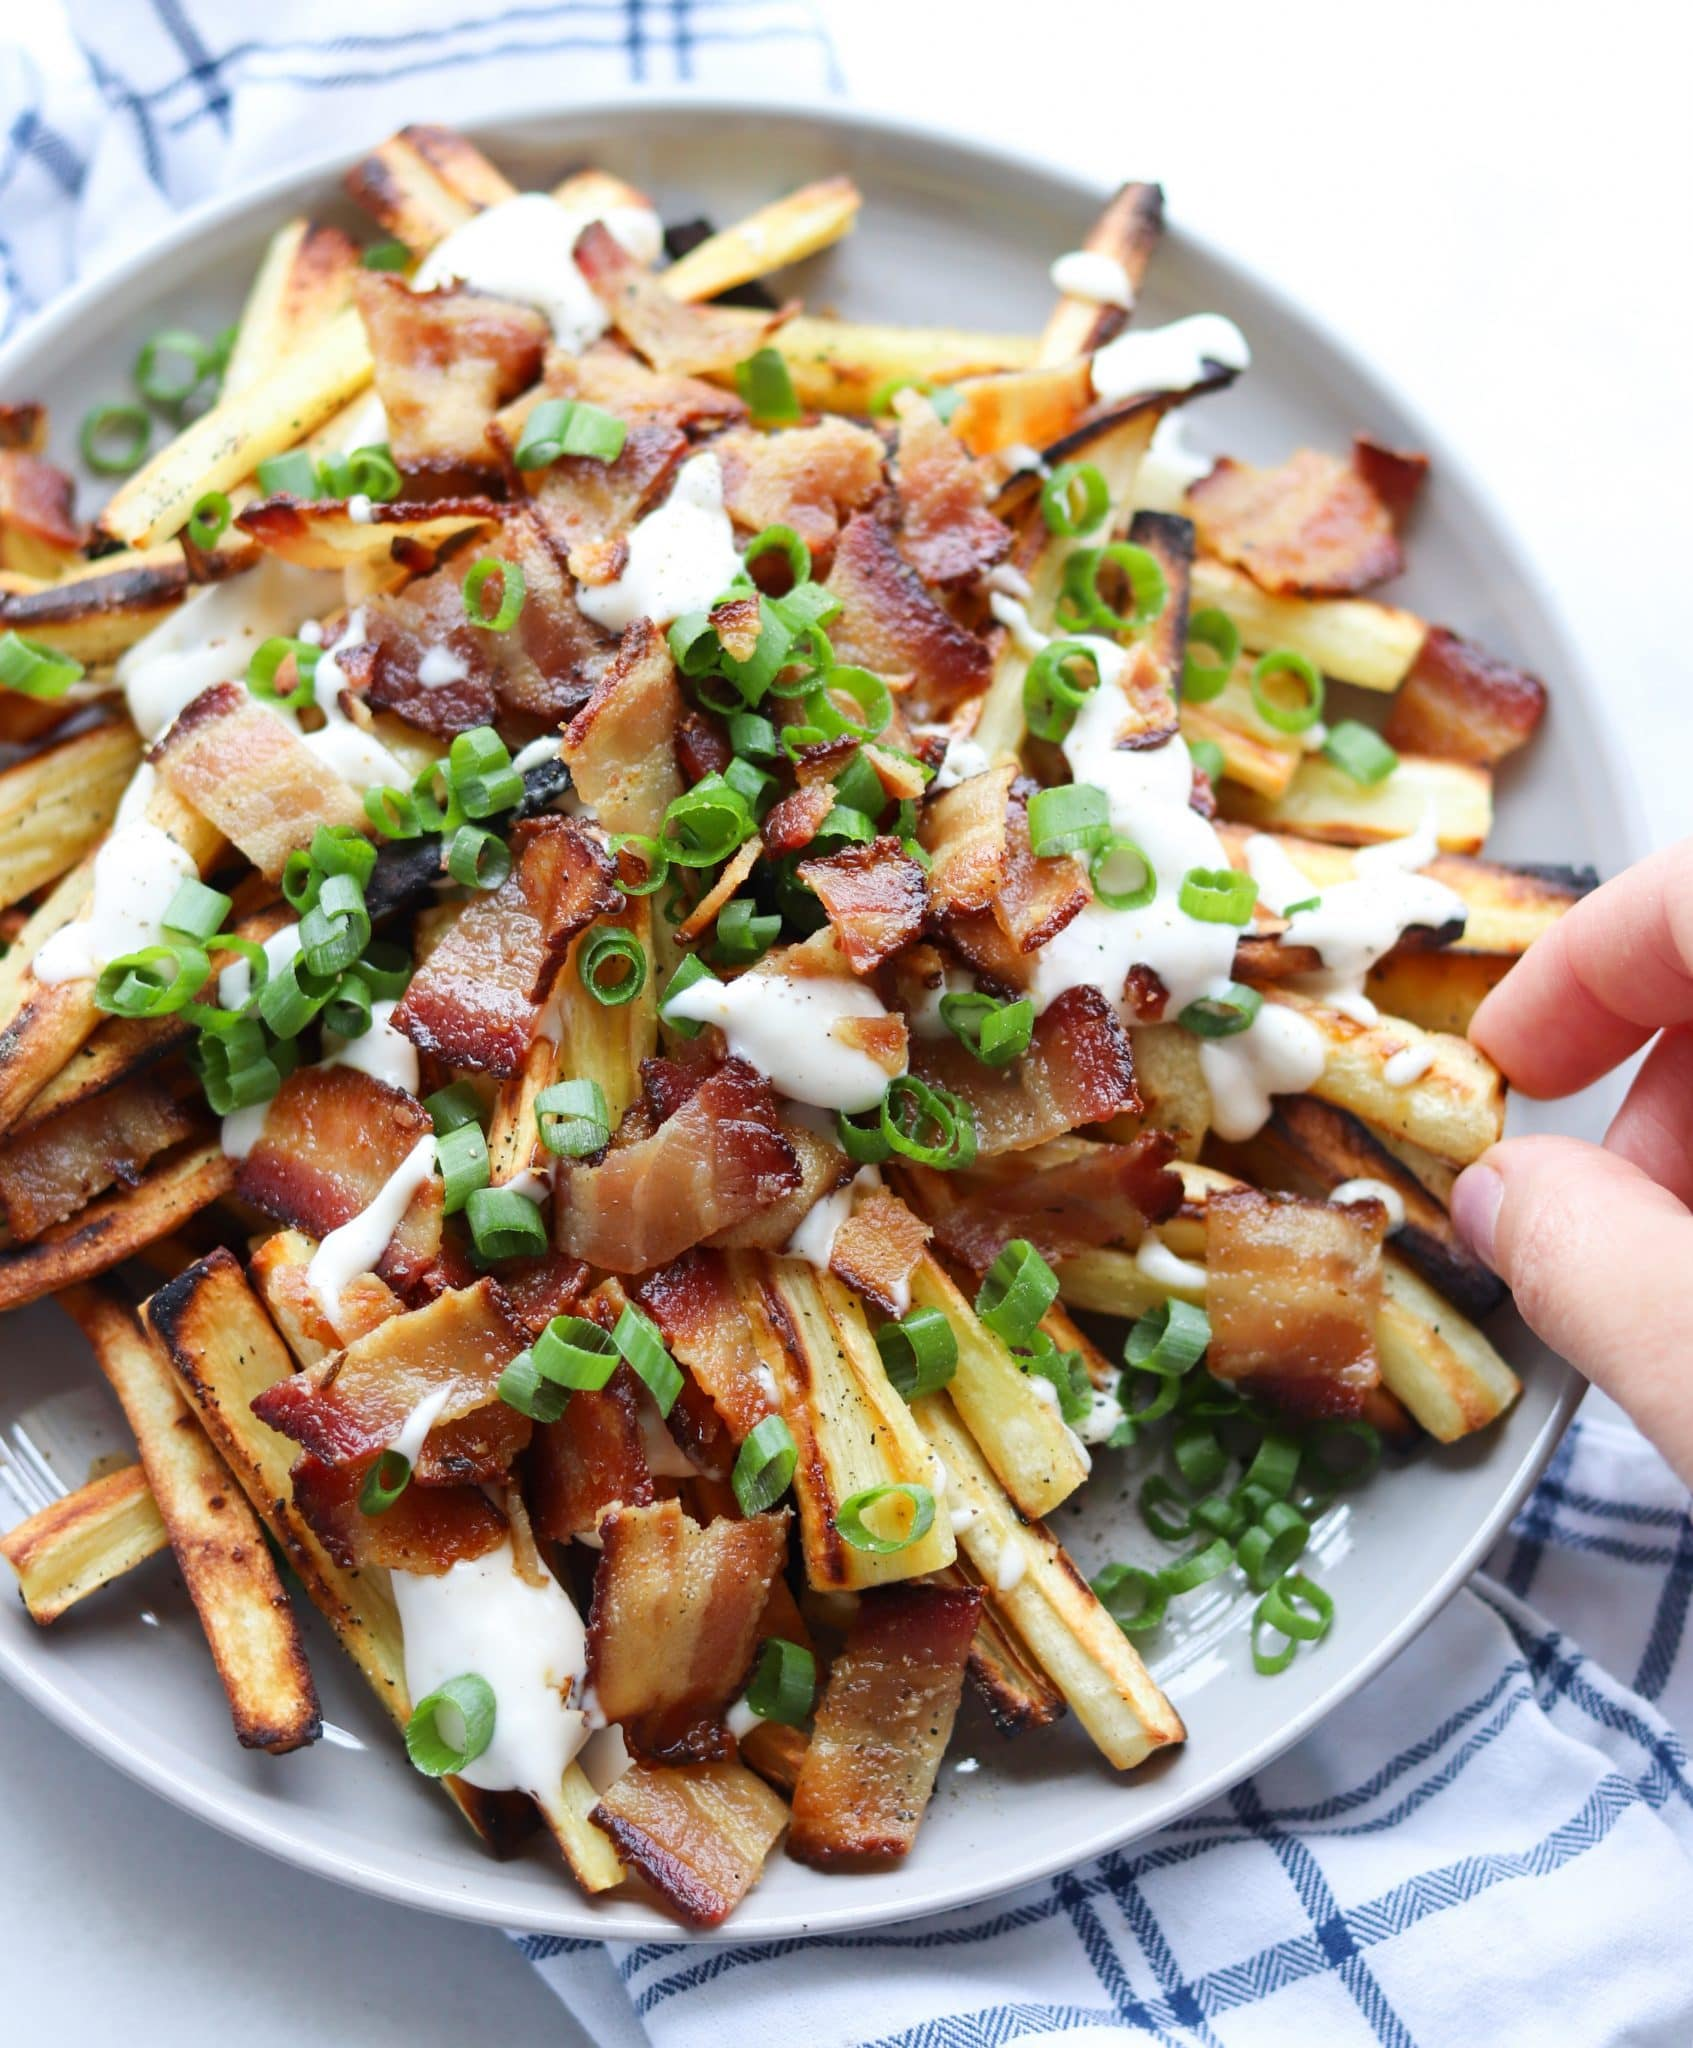 Loaded Roasted Parsnip Fries - Finished Dish on a gray plate with a white napkin beside it.